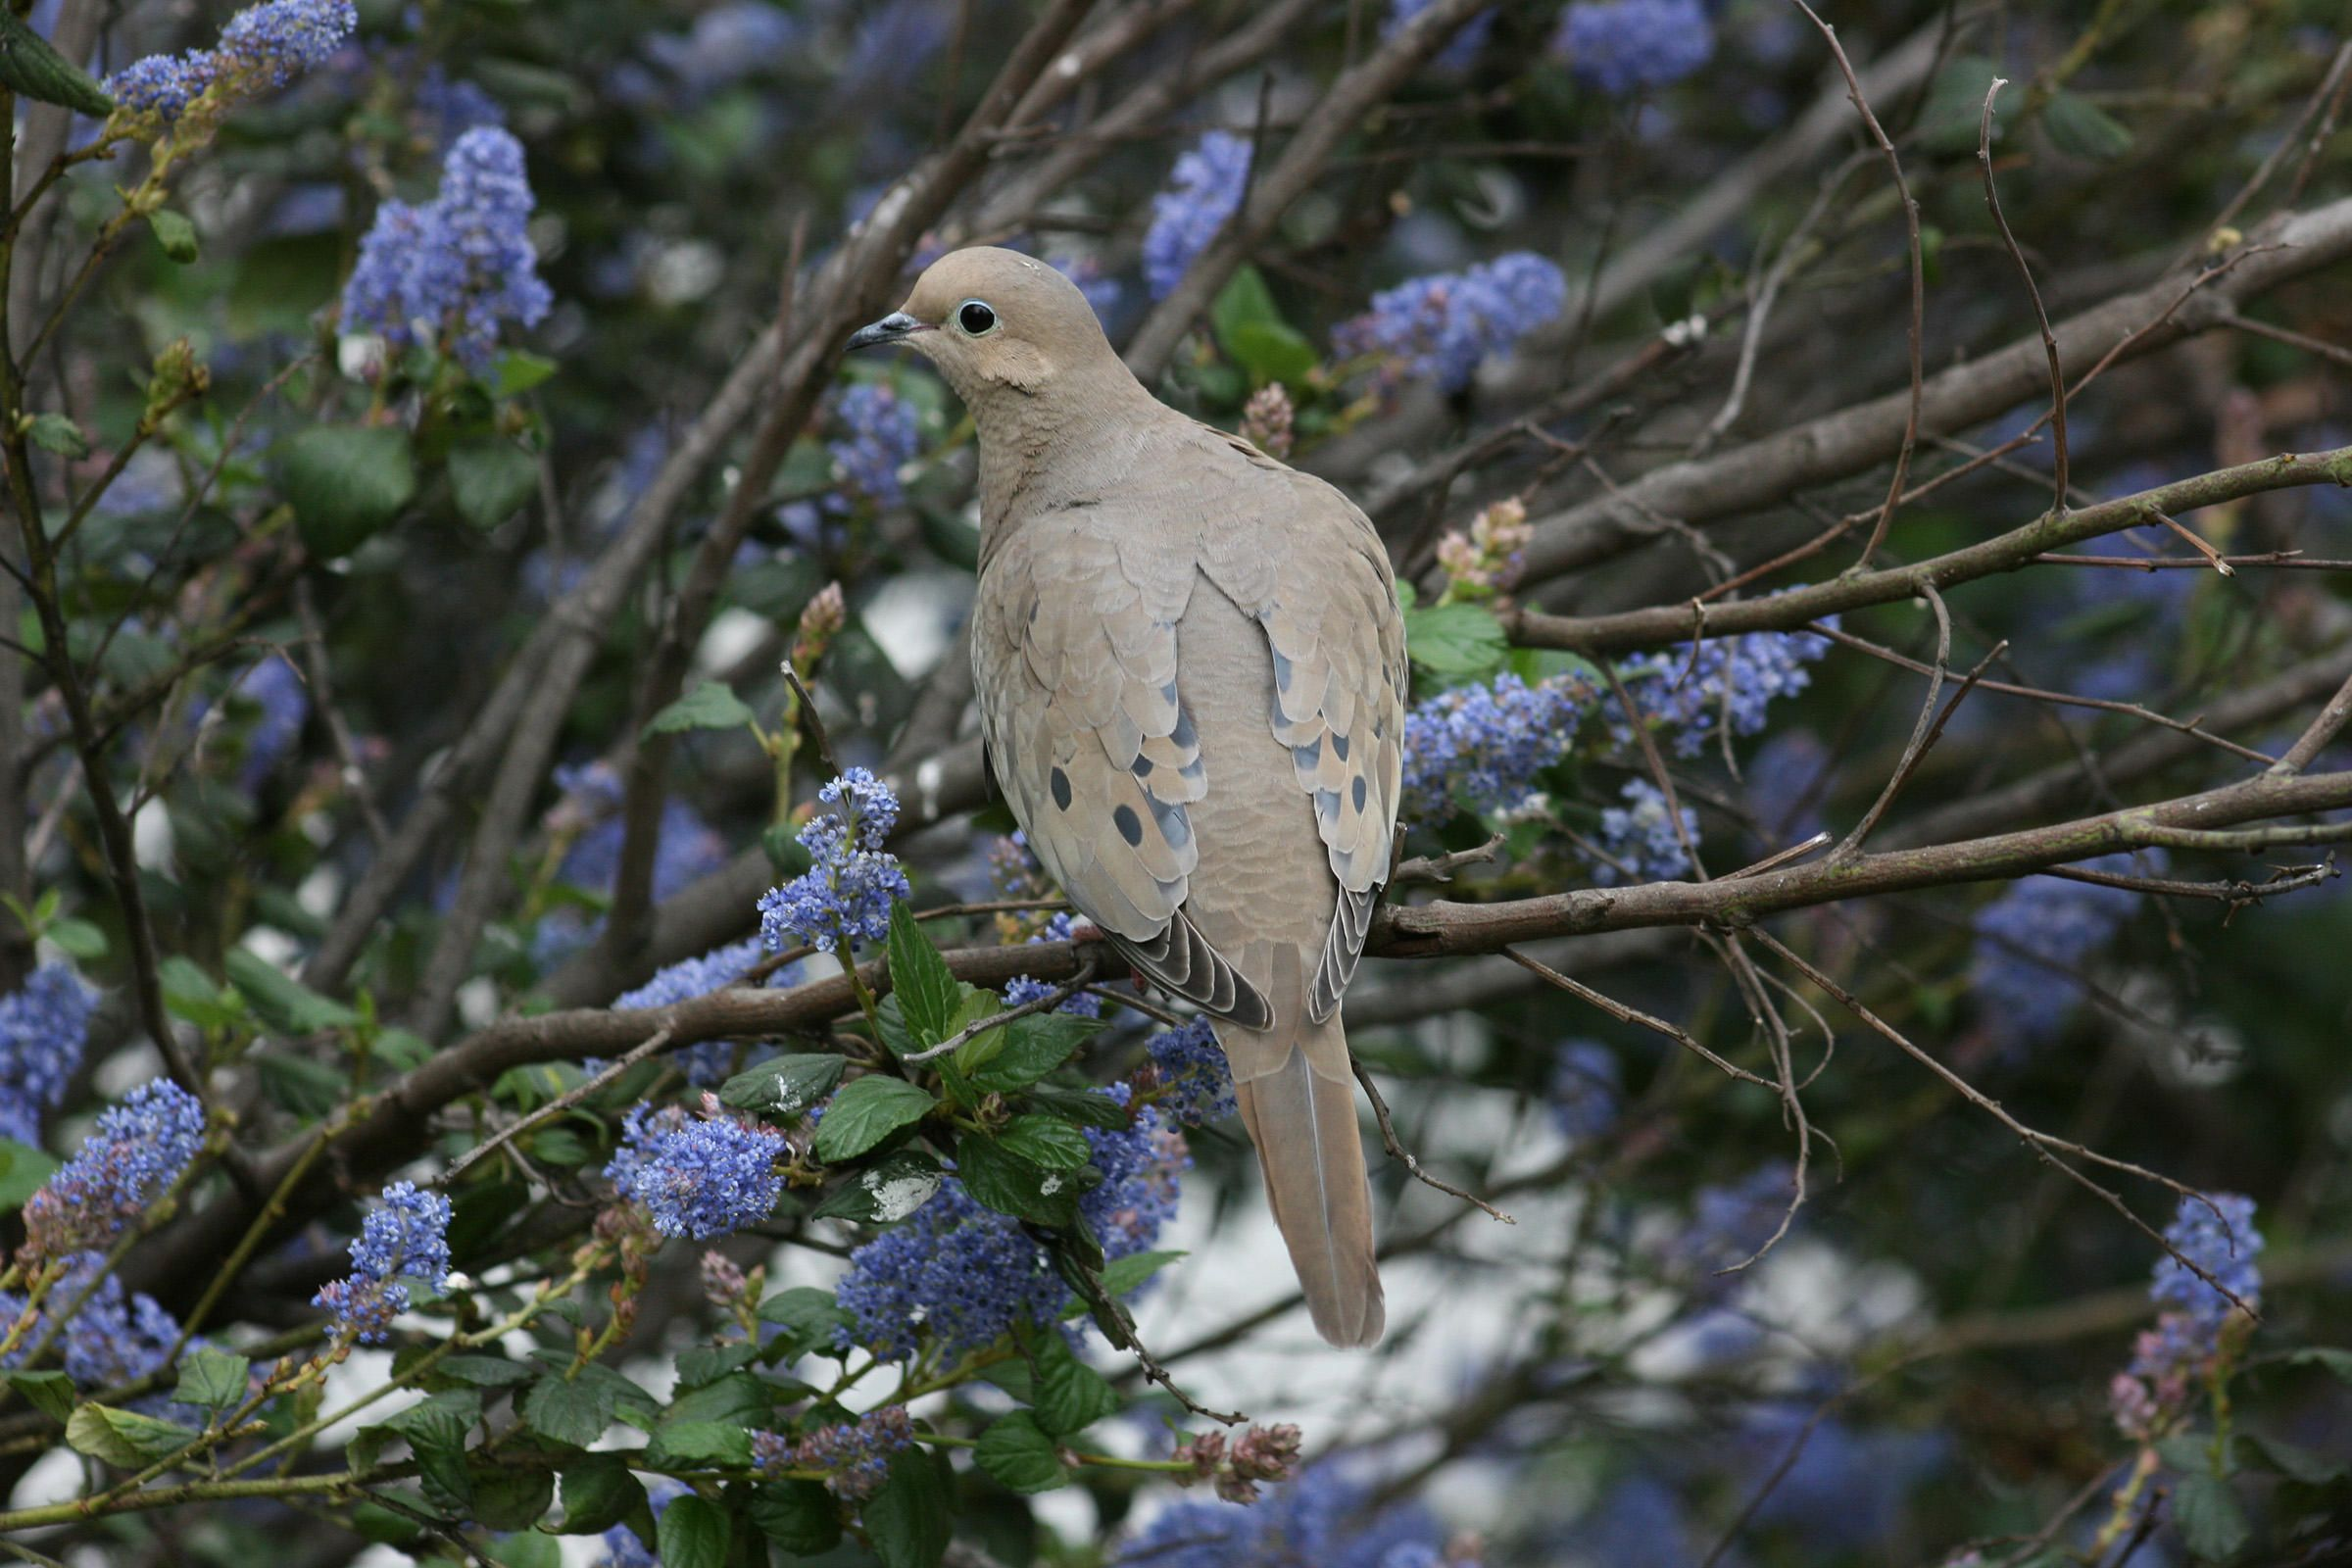 the mournful cooing of the mourning dove is one of our most